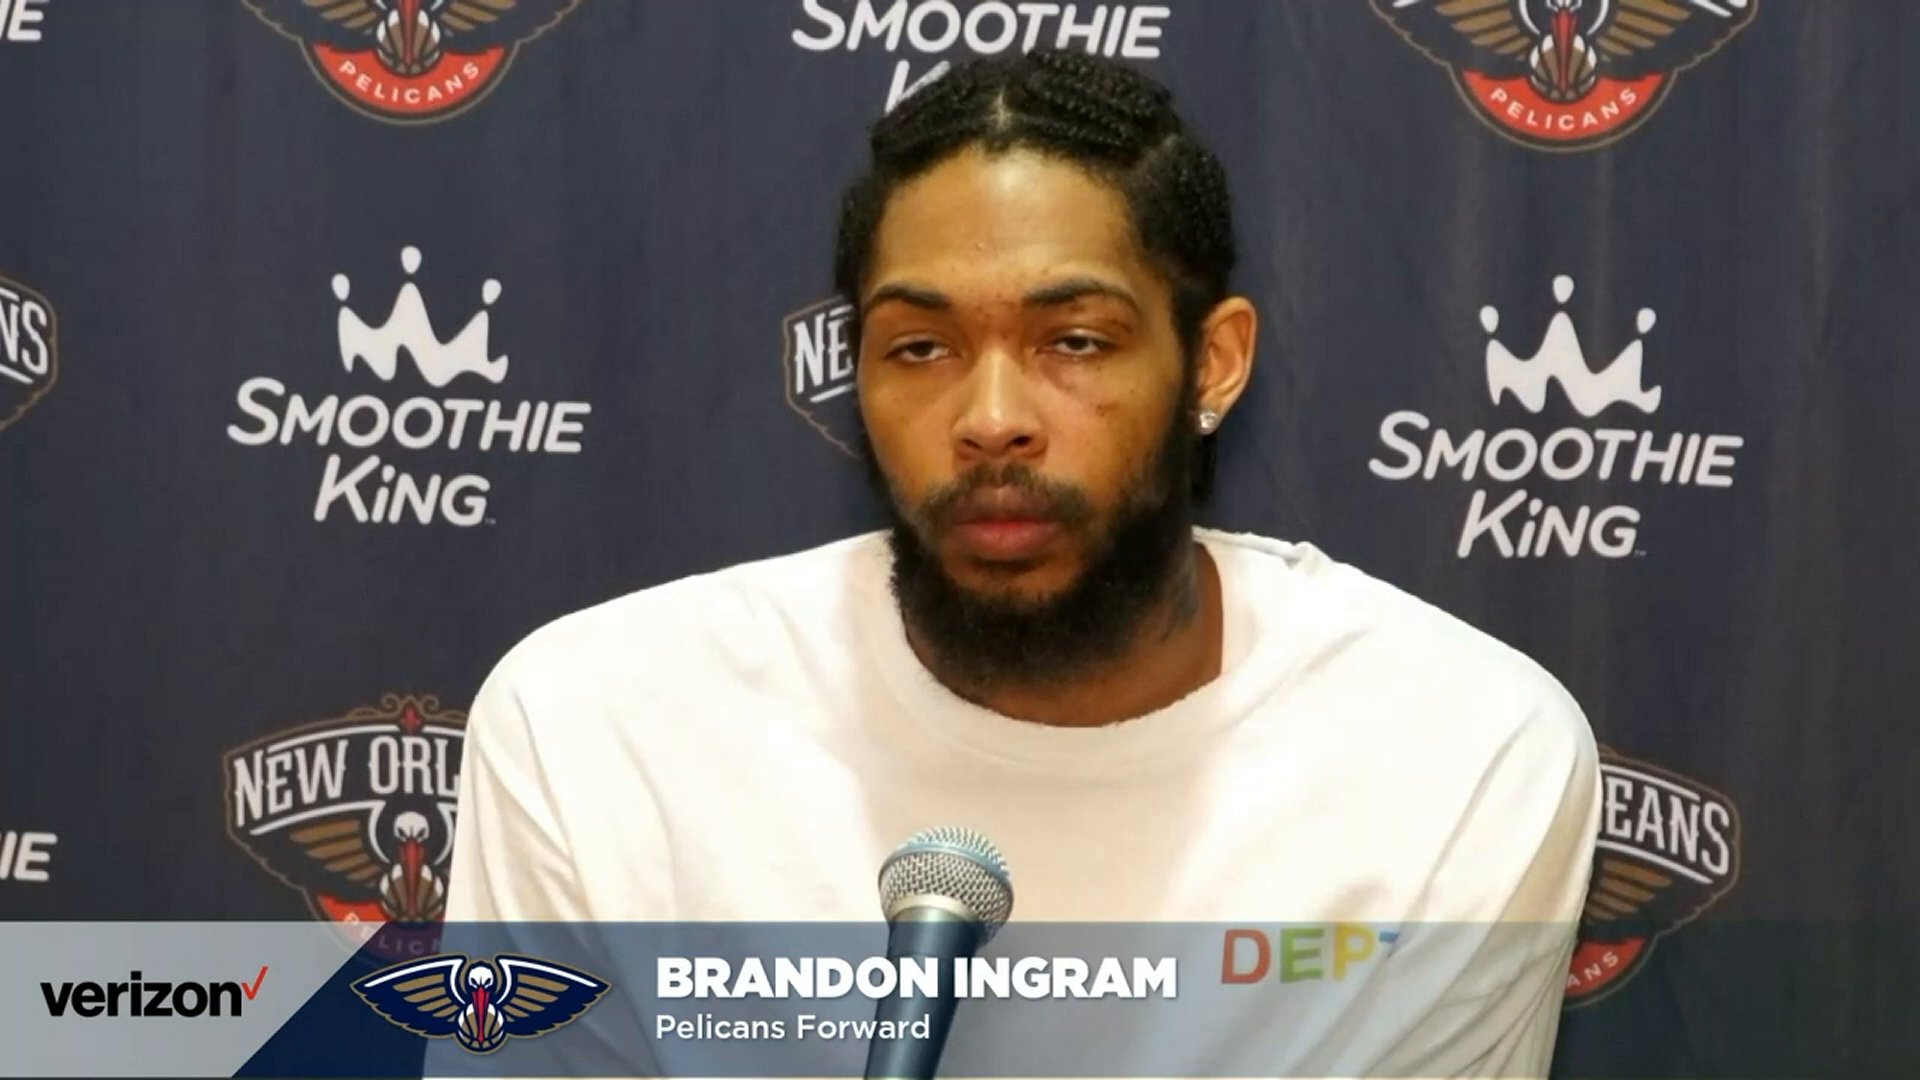 Pelicans-Wizards Postgame: Brandon Ingram 4-16-21